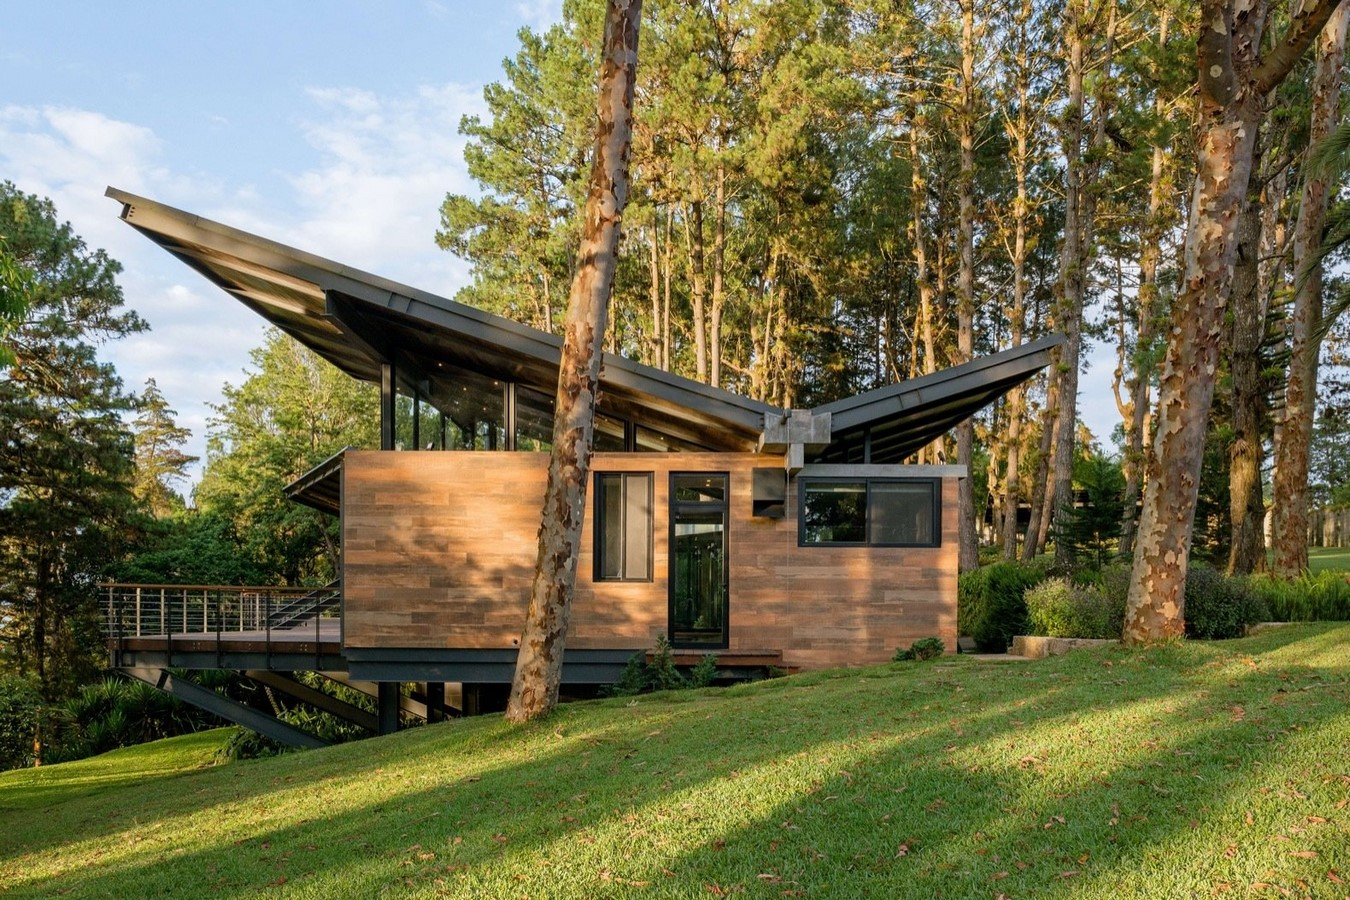 10 Examples of butterfly roofing in the Mid-Century Classic Architecture - Sheet1